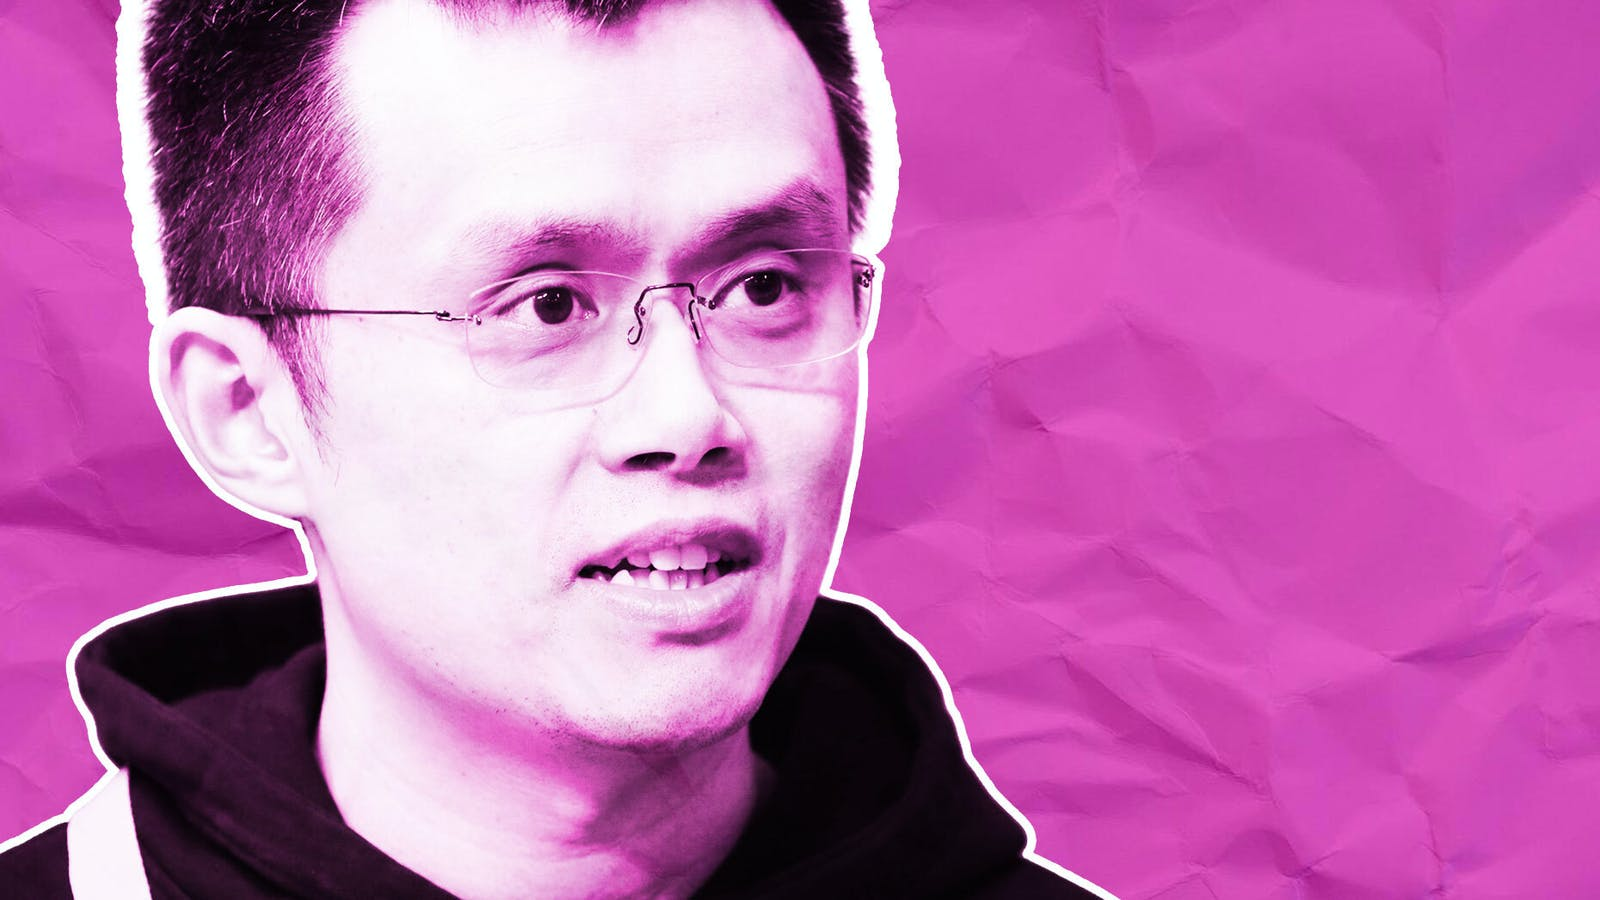 Changpeng Zhao, CEO and founder of Binance. Photo by Bloomberg